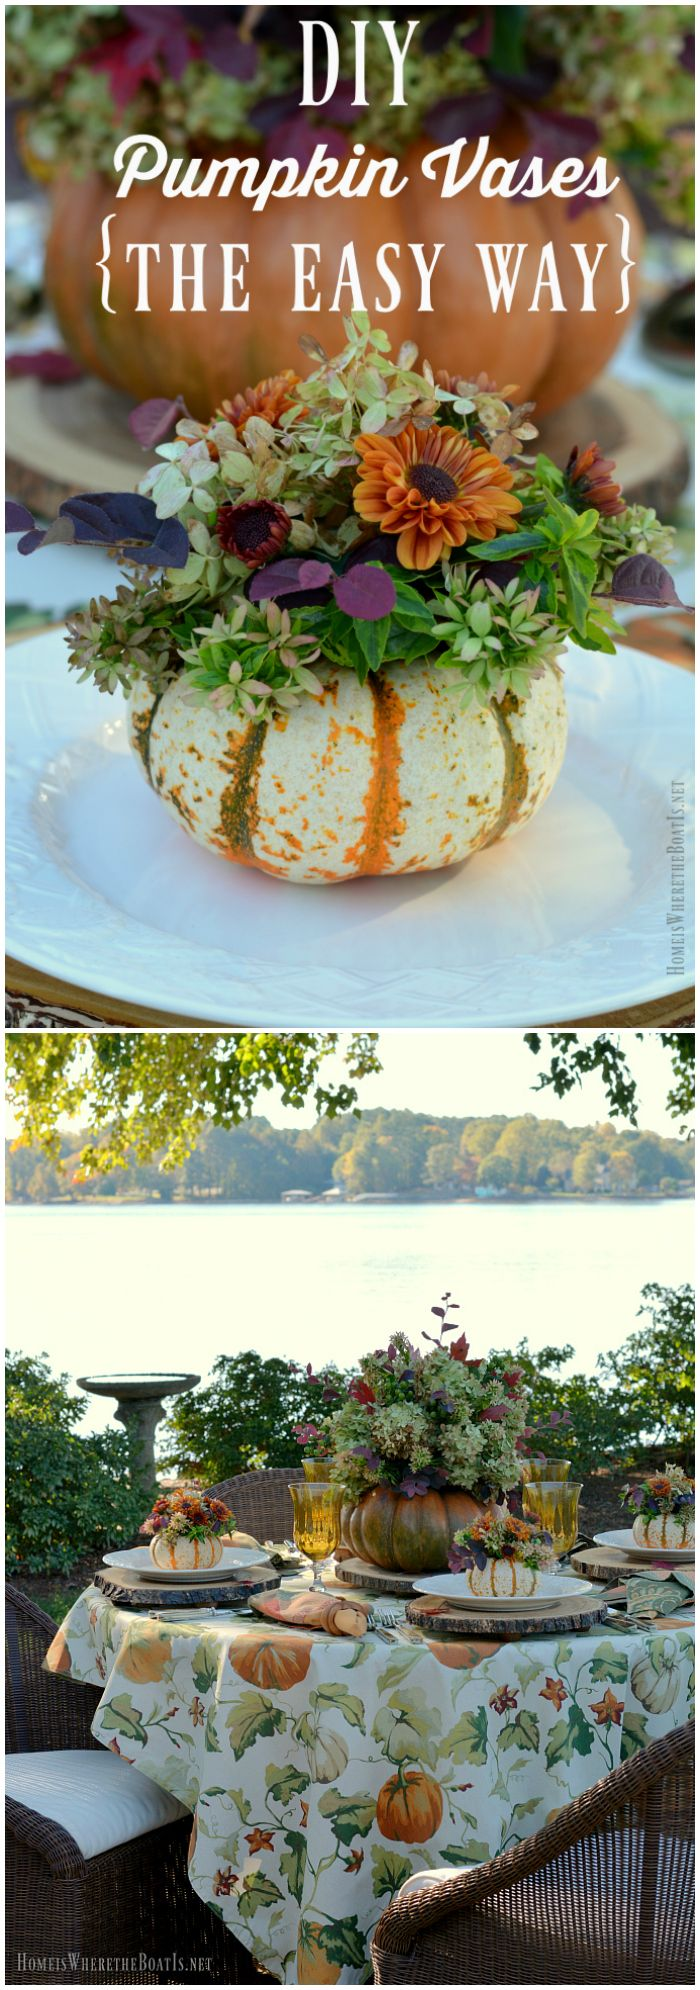 DIY Pumpkin Vases: Create a Blooming Pumpkin the Easy Way, no cutting required! | homeiswheretheboatis.net #fall #alfresco #tablescape